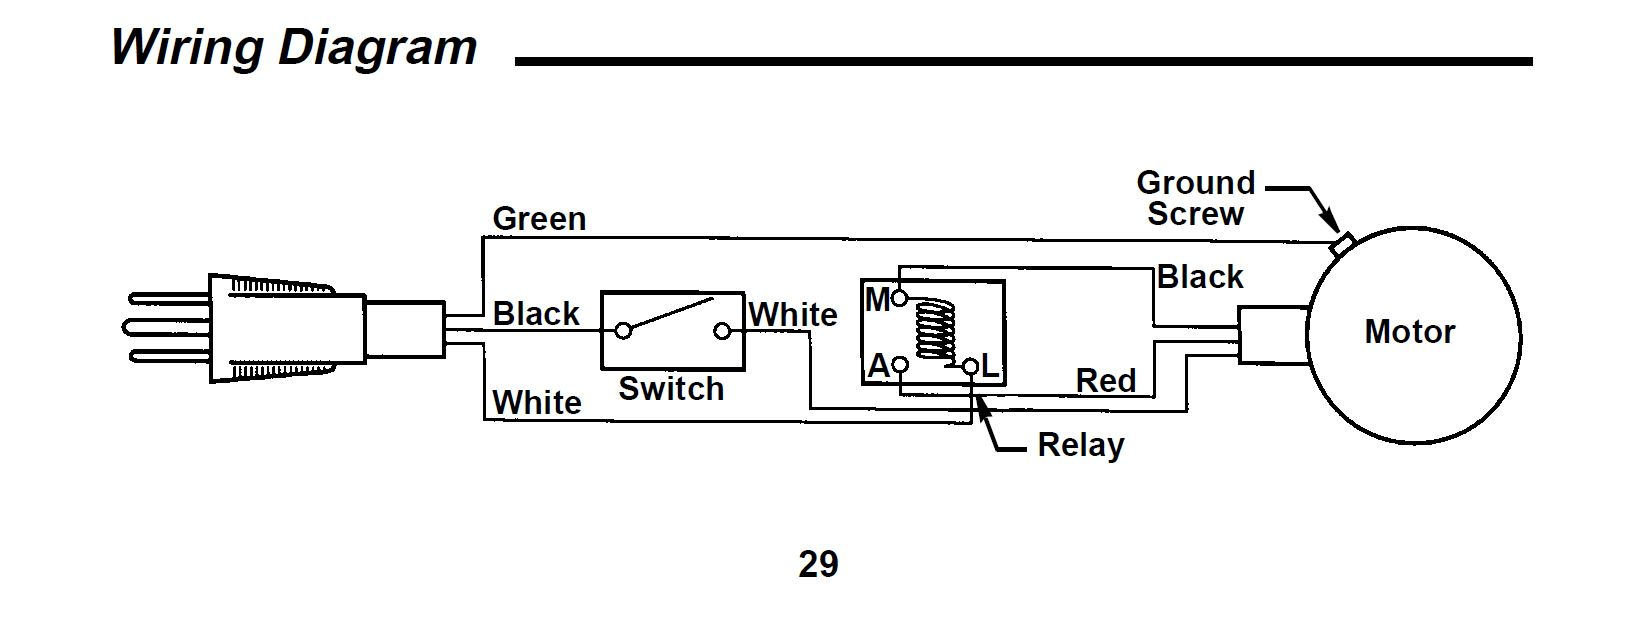 belt sander switch wiring diagram   33 wiring diagram